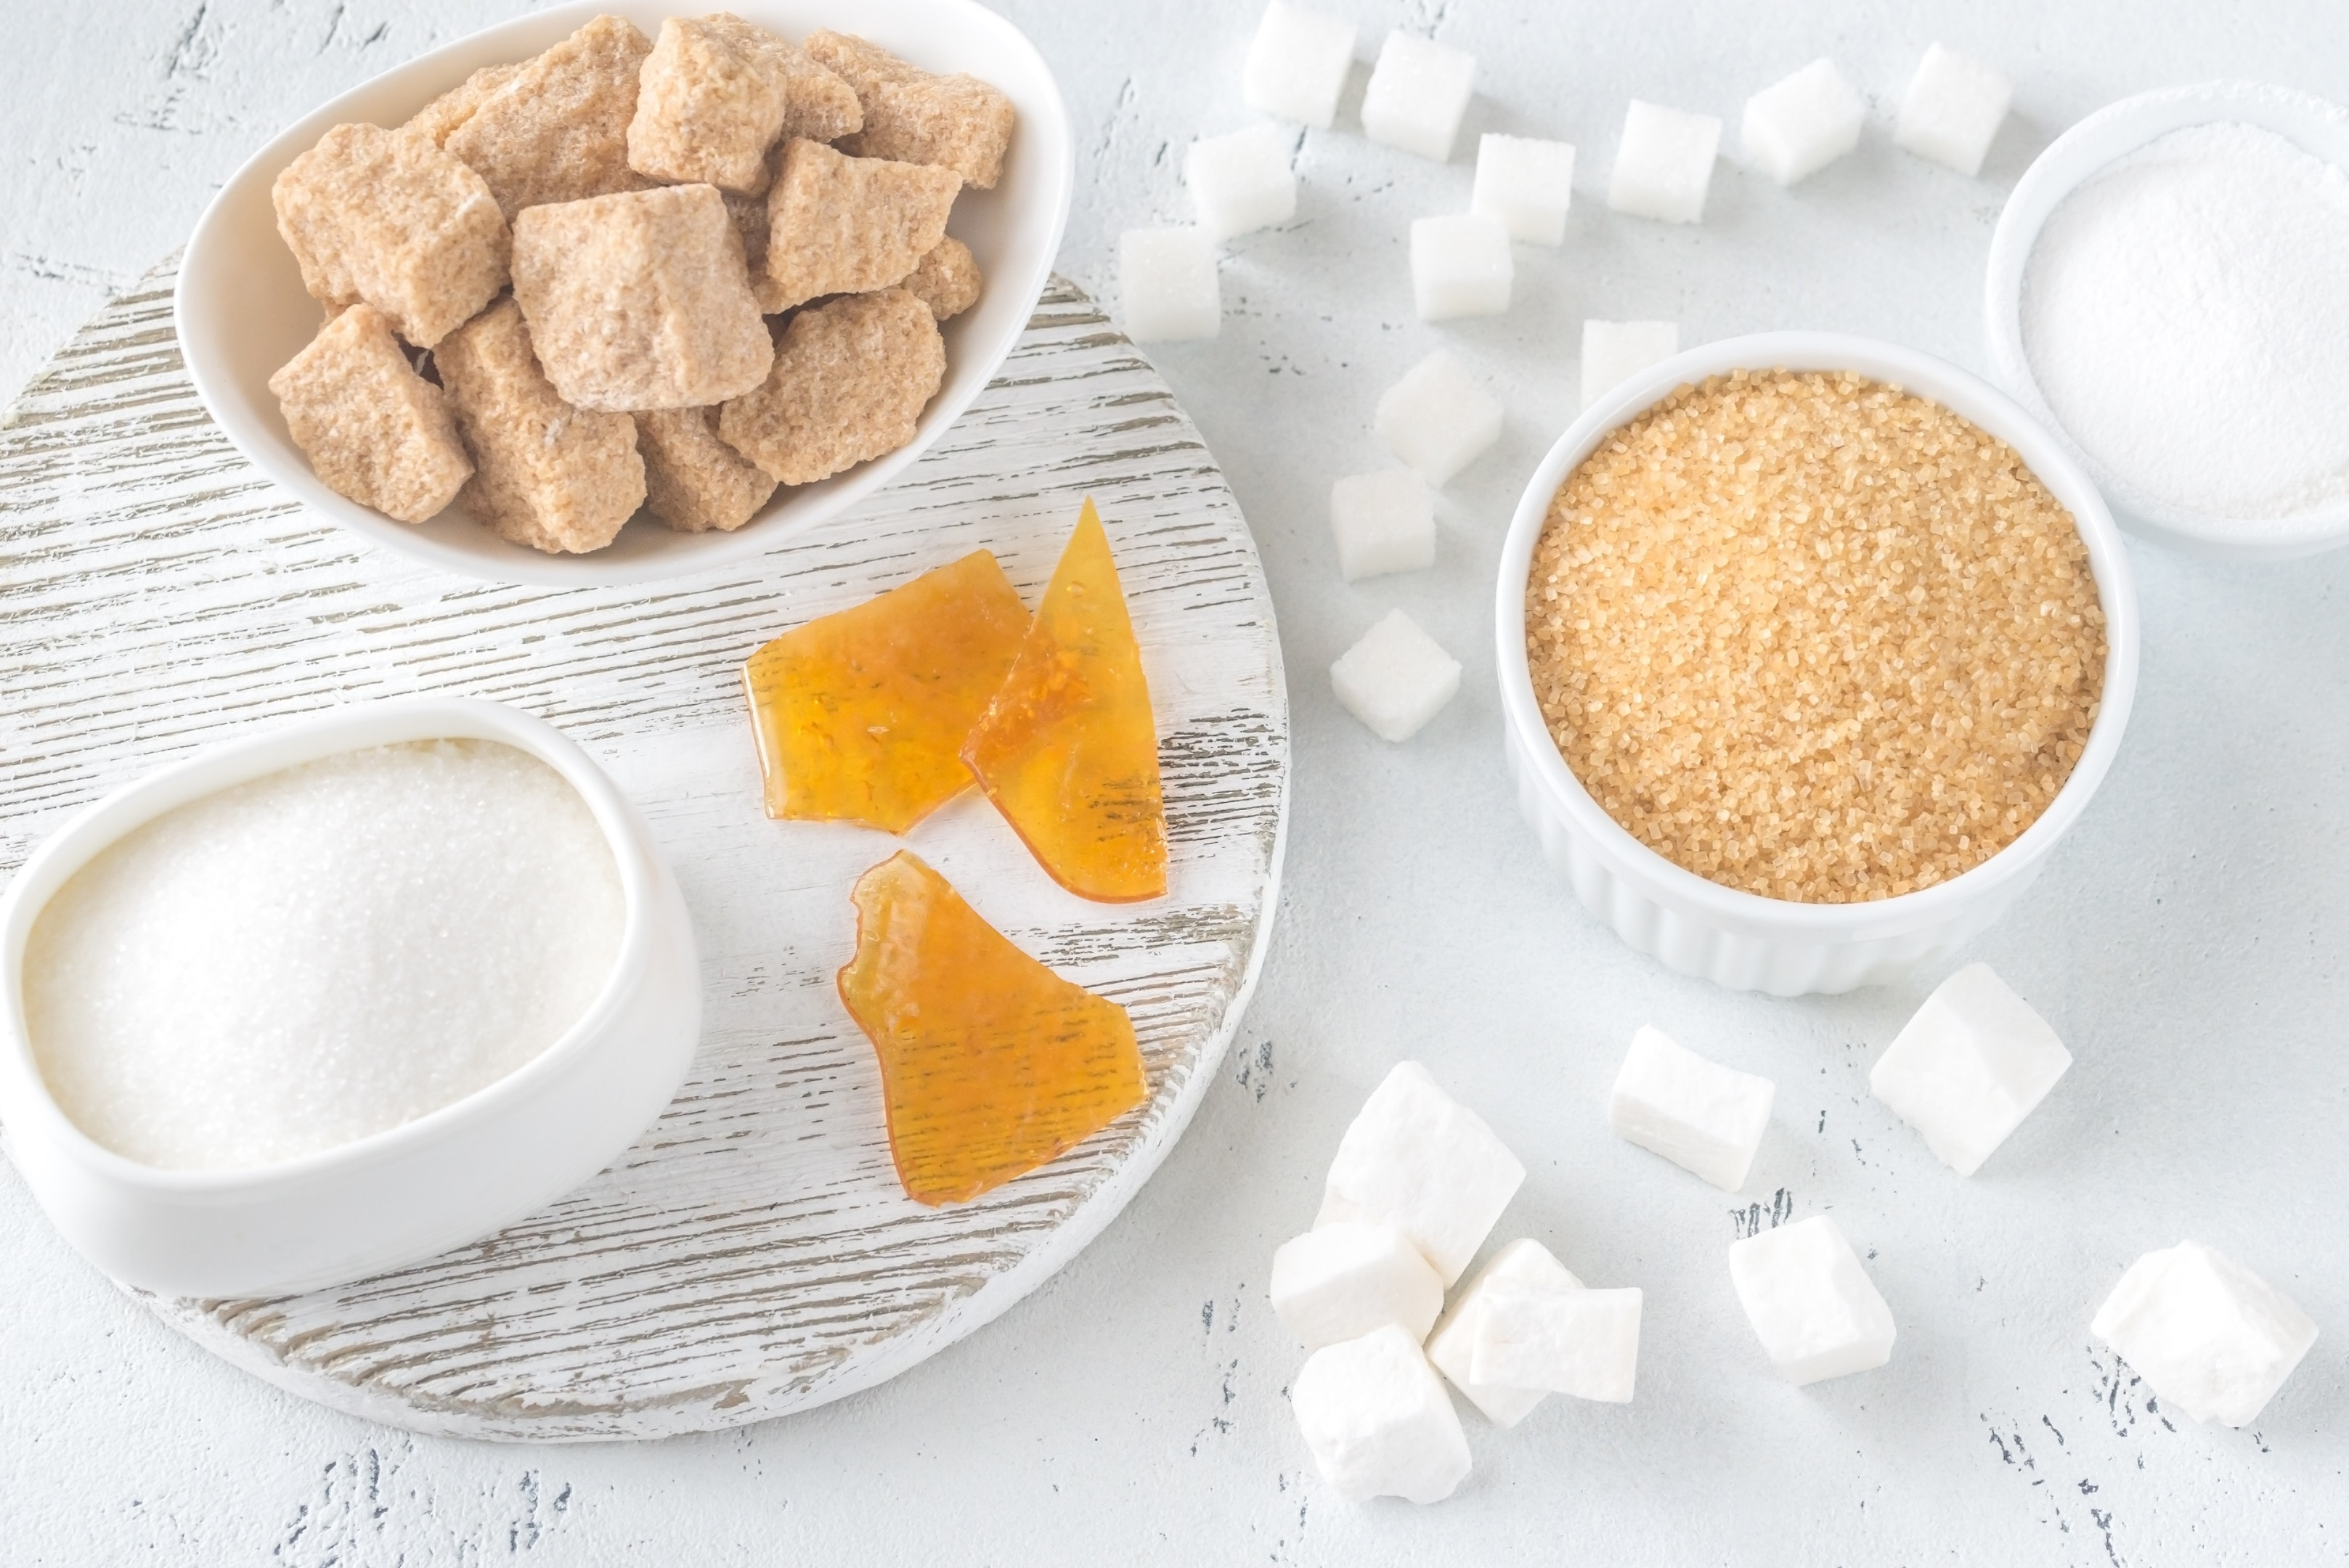 Different kinds of refined sugar